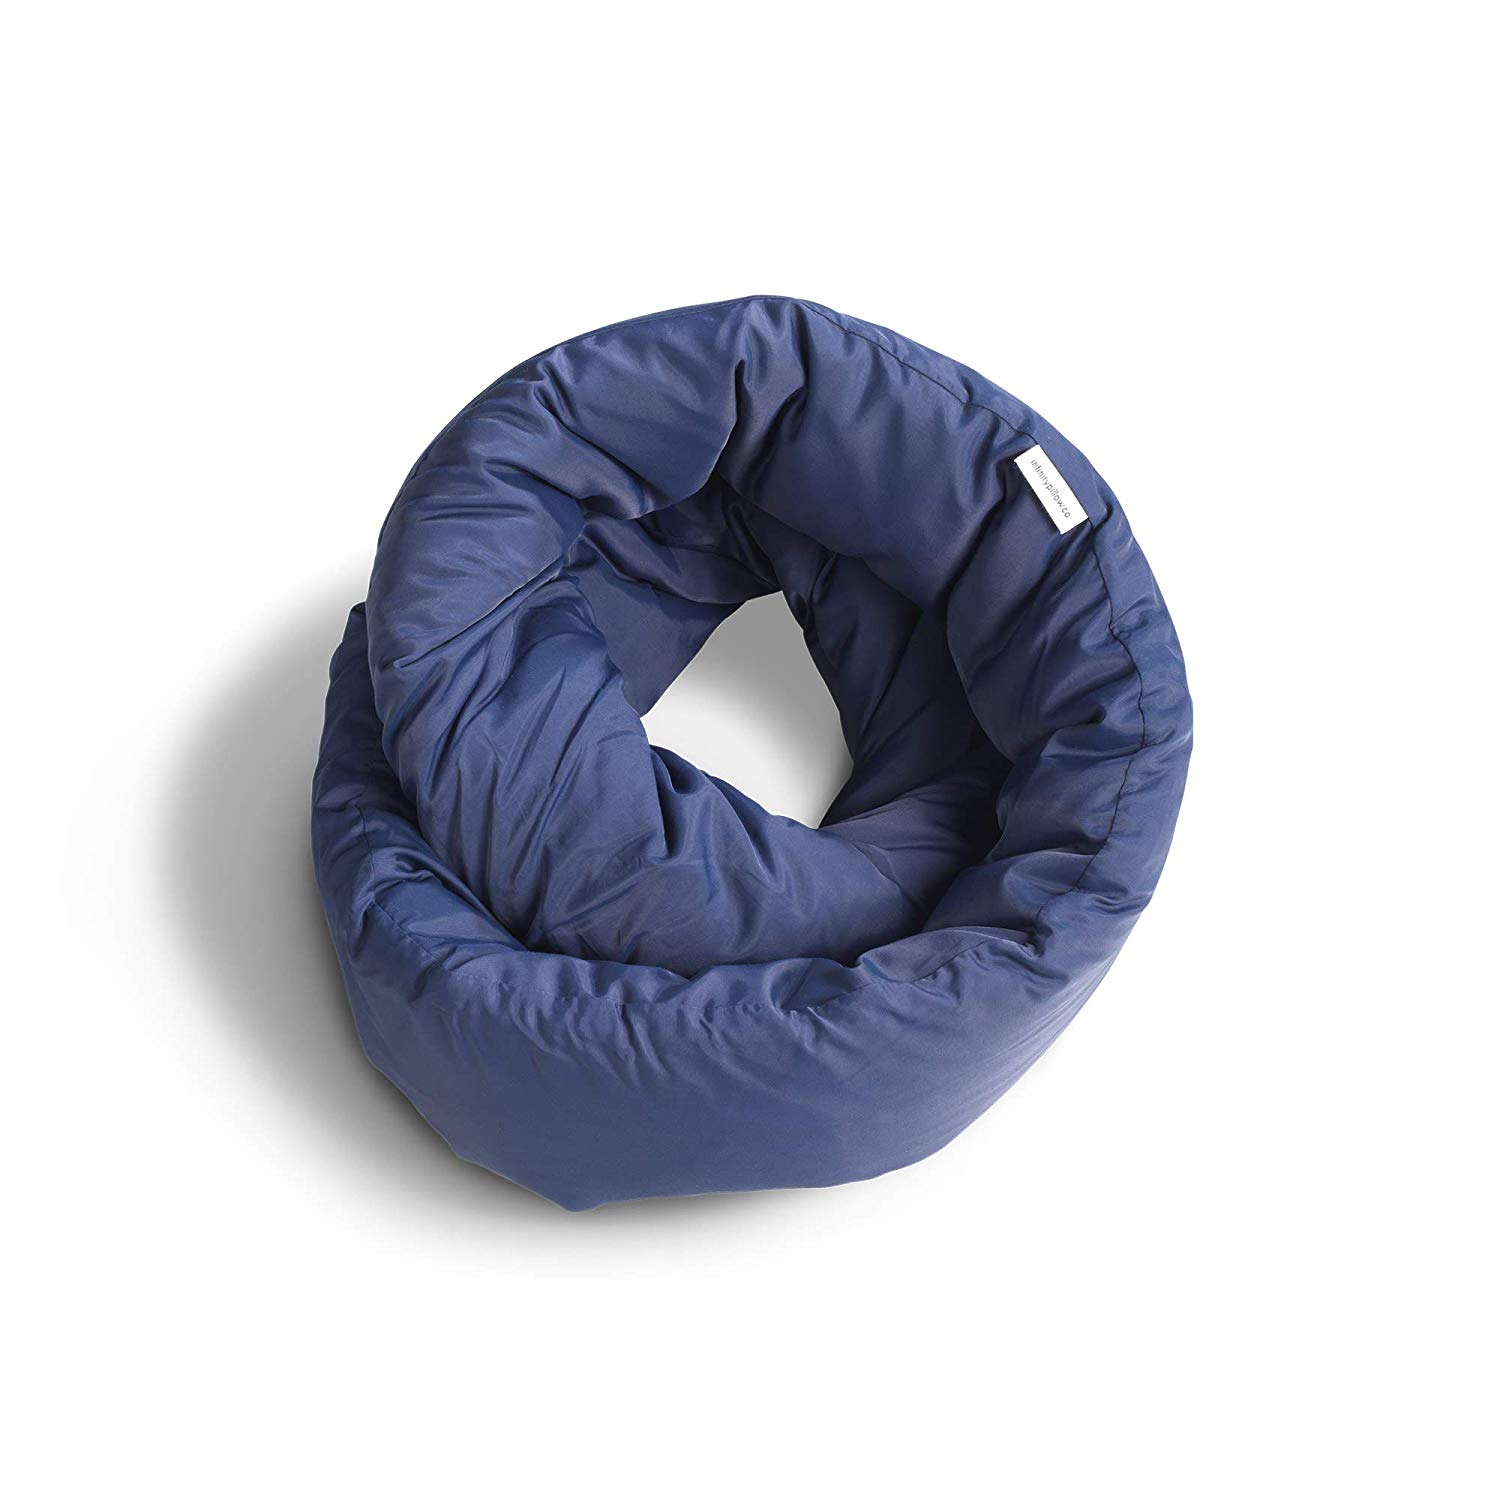 blow up neck pillow for plane | Comfortable airplane pillow